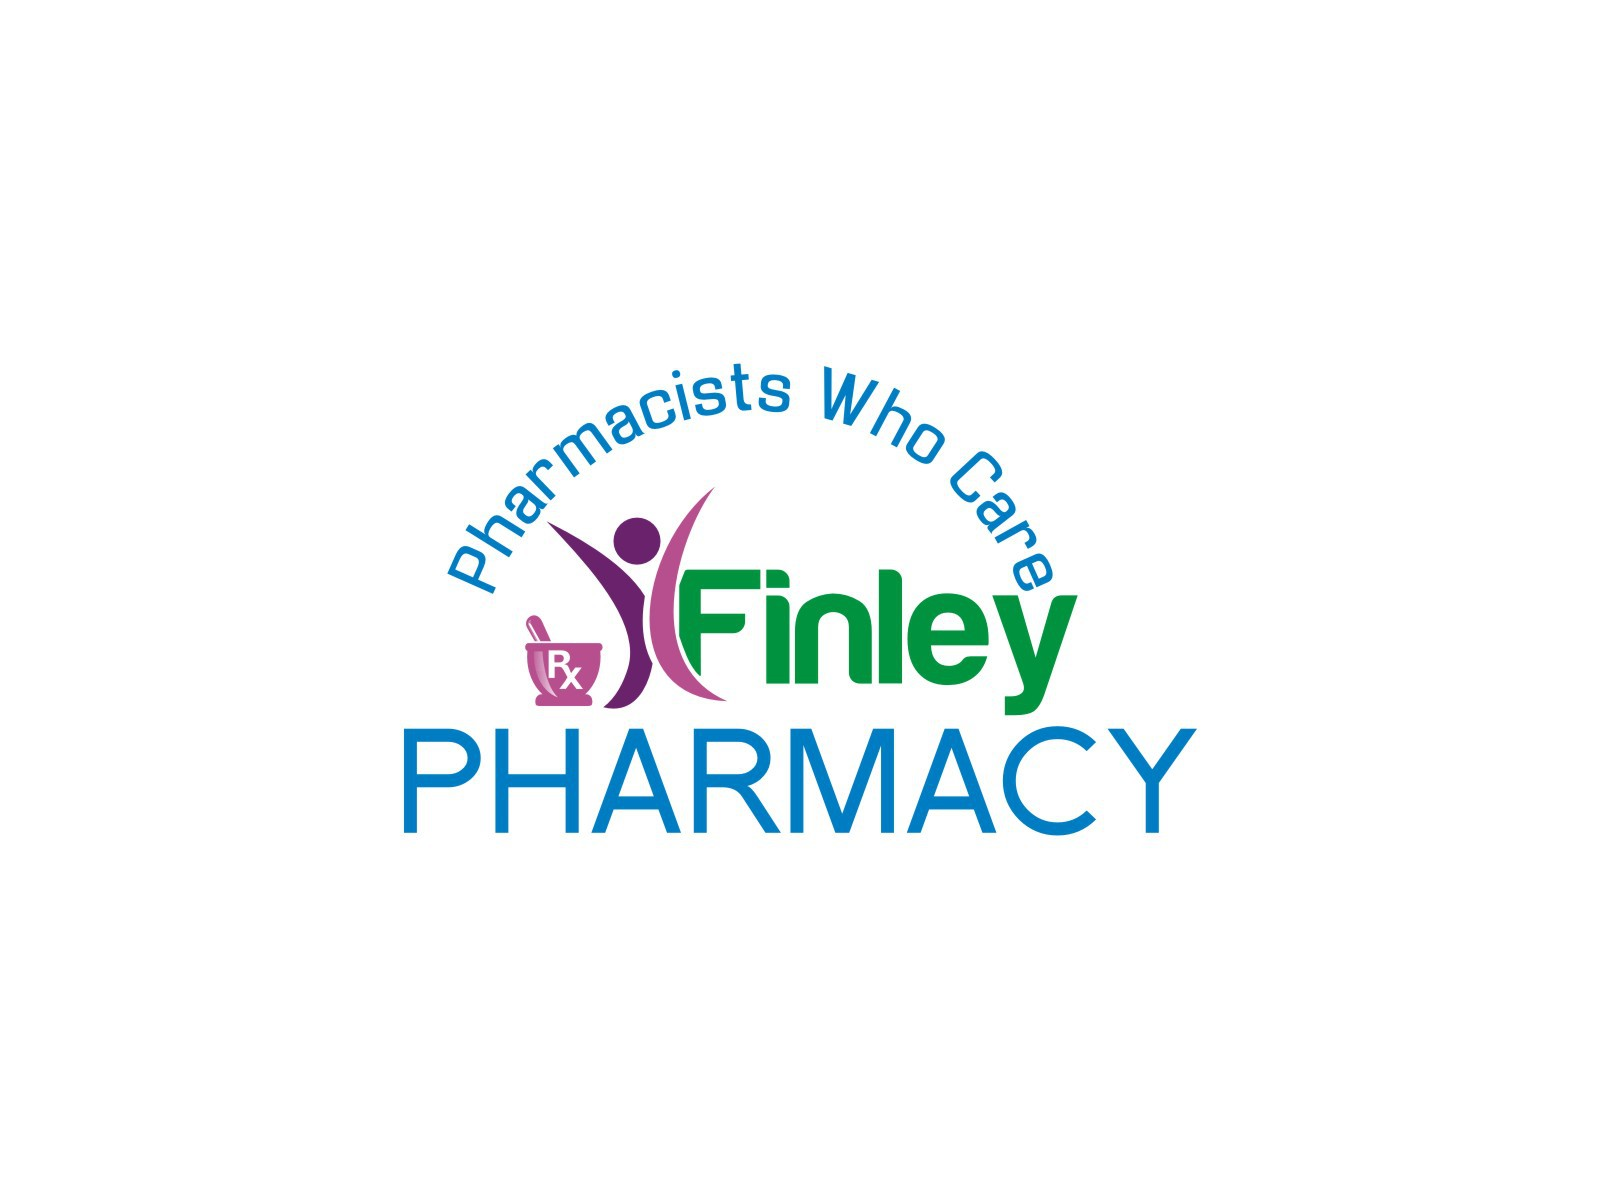 New logo wanted for Finley Pharmacy